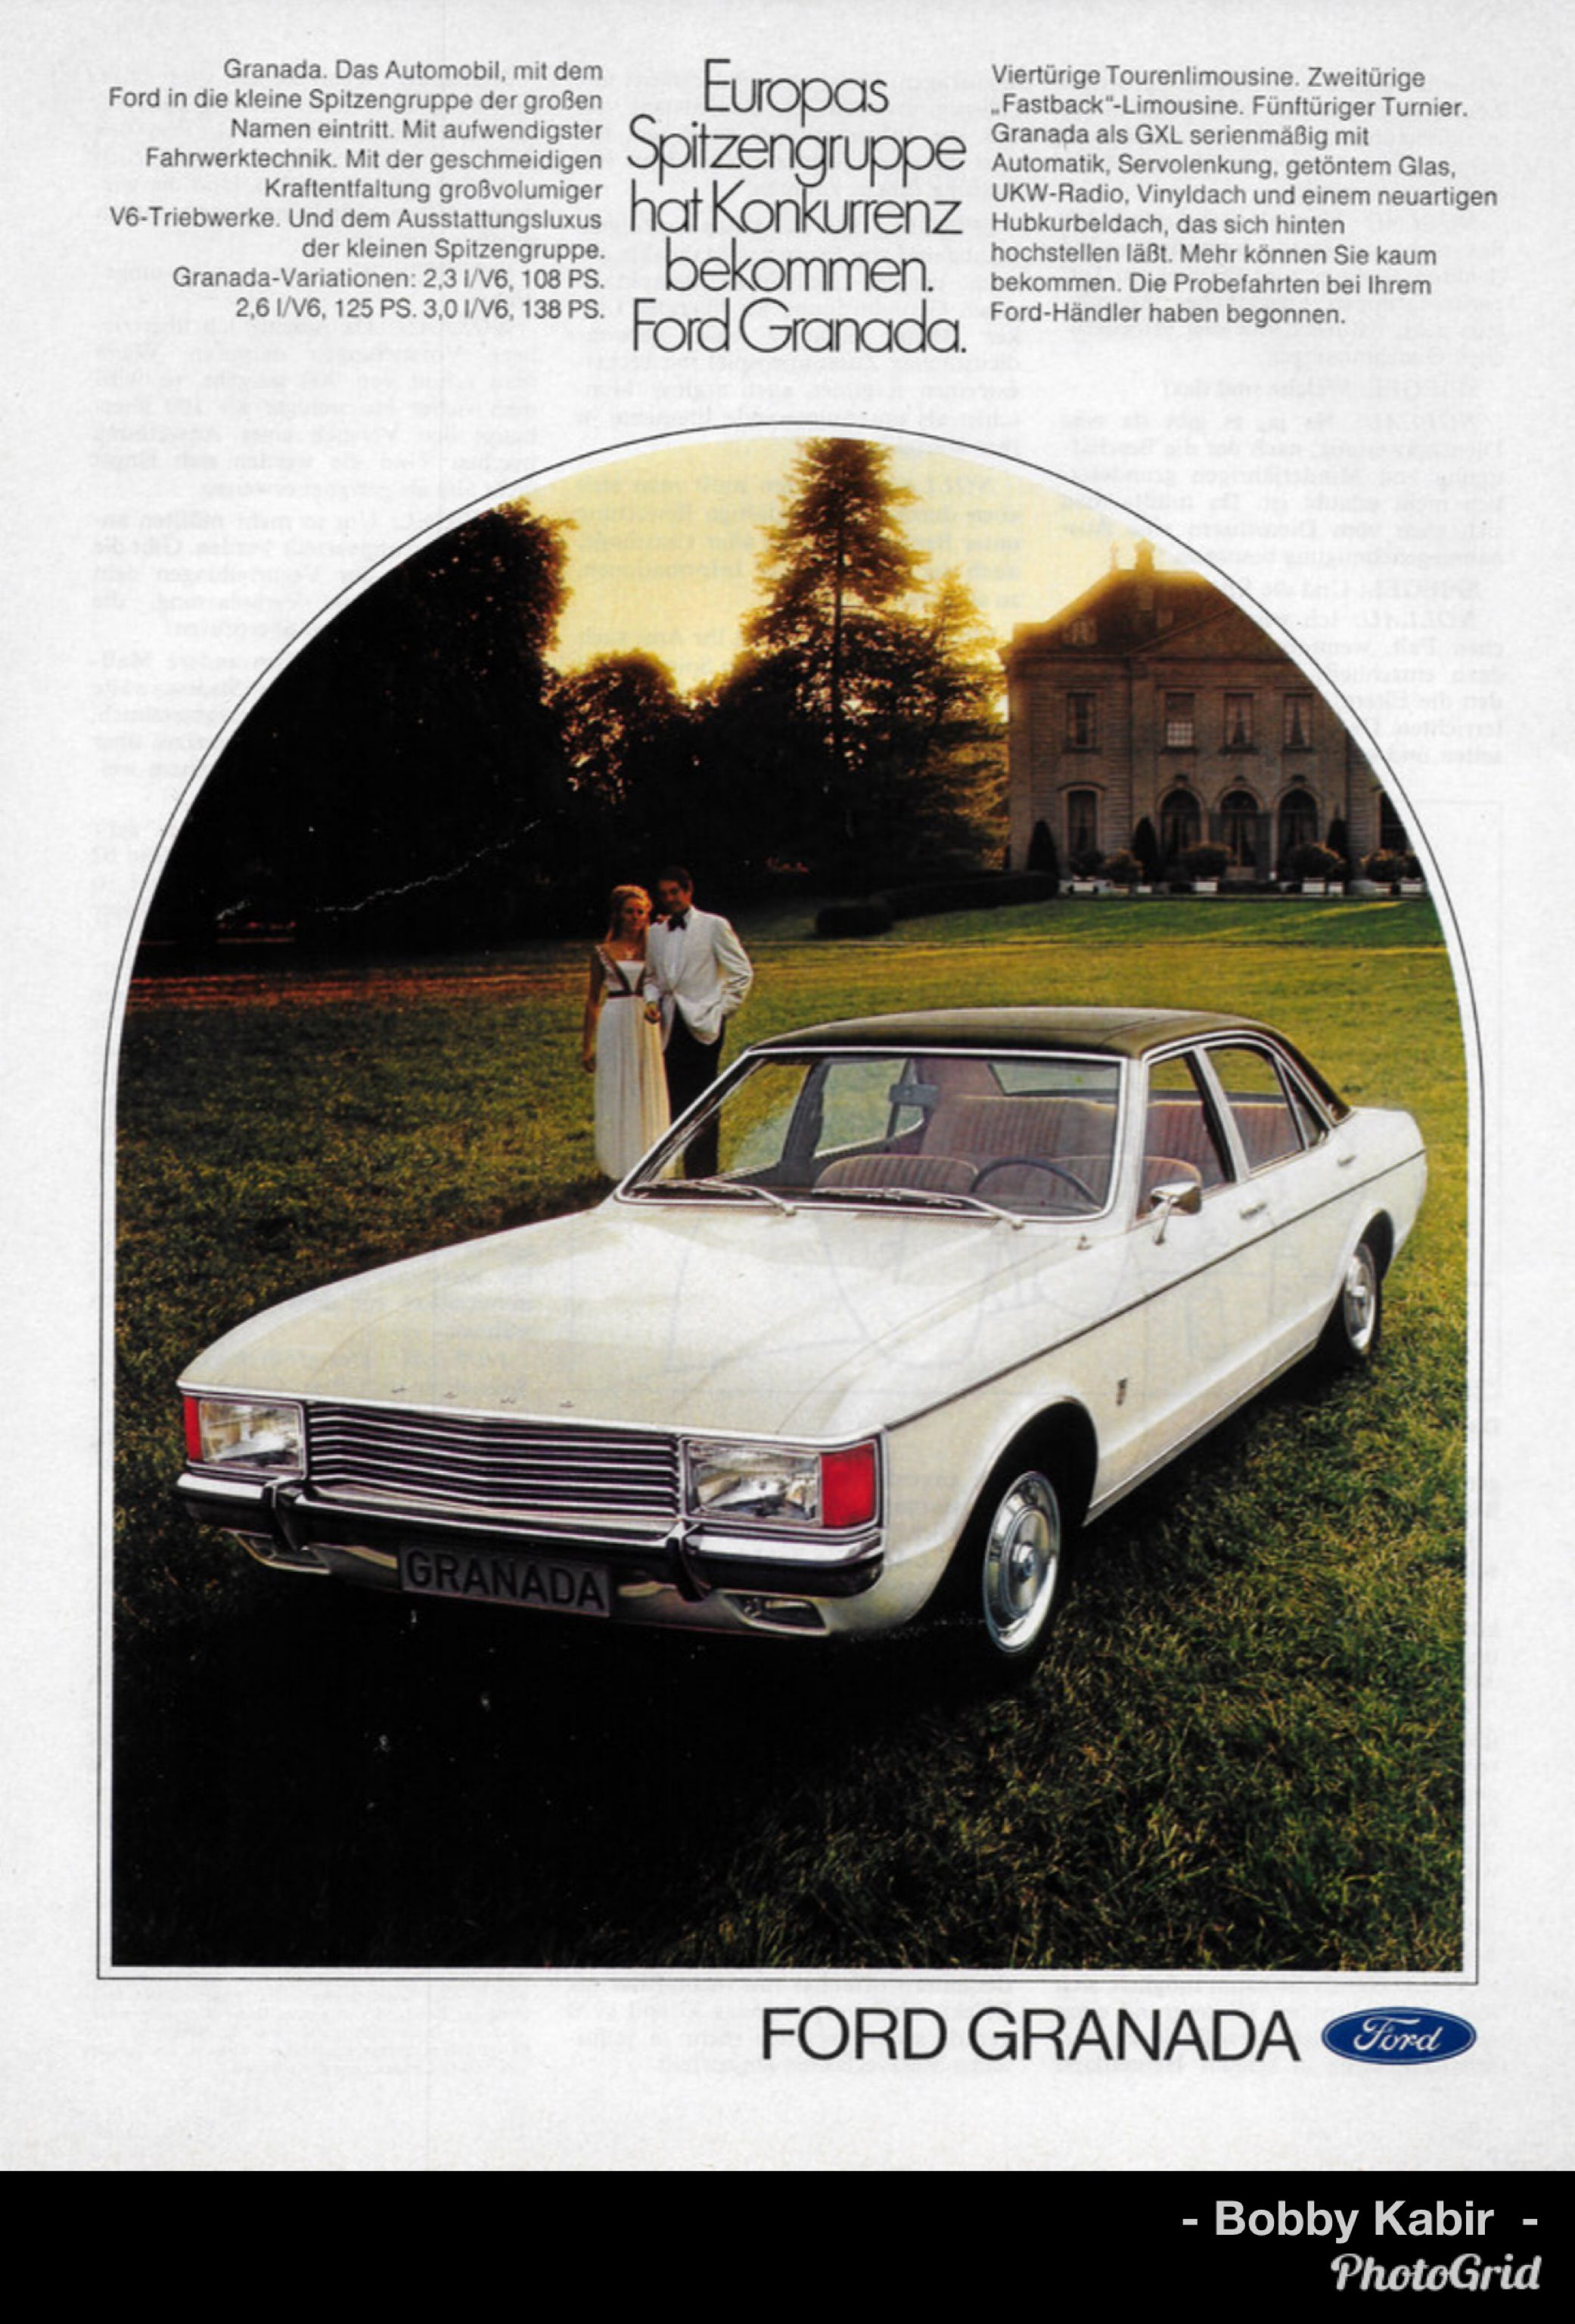 1972 Ford Granada Germany By Michael On Flickr Ford Granada Good Looking Cars European Cars